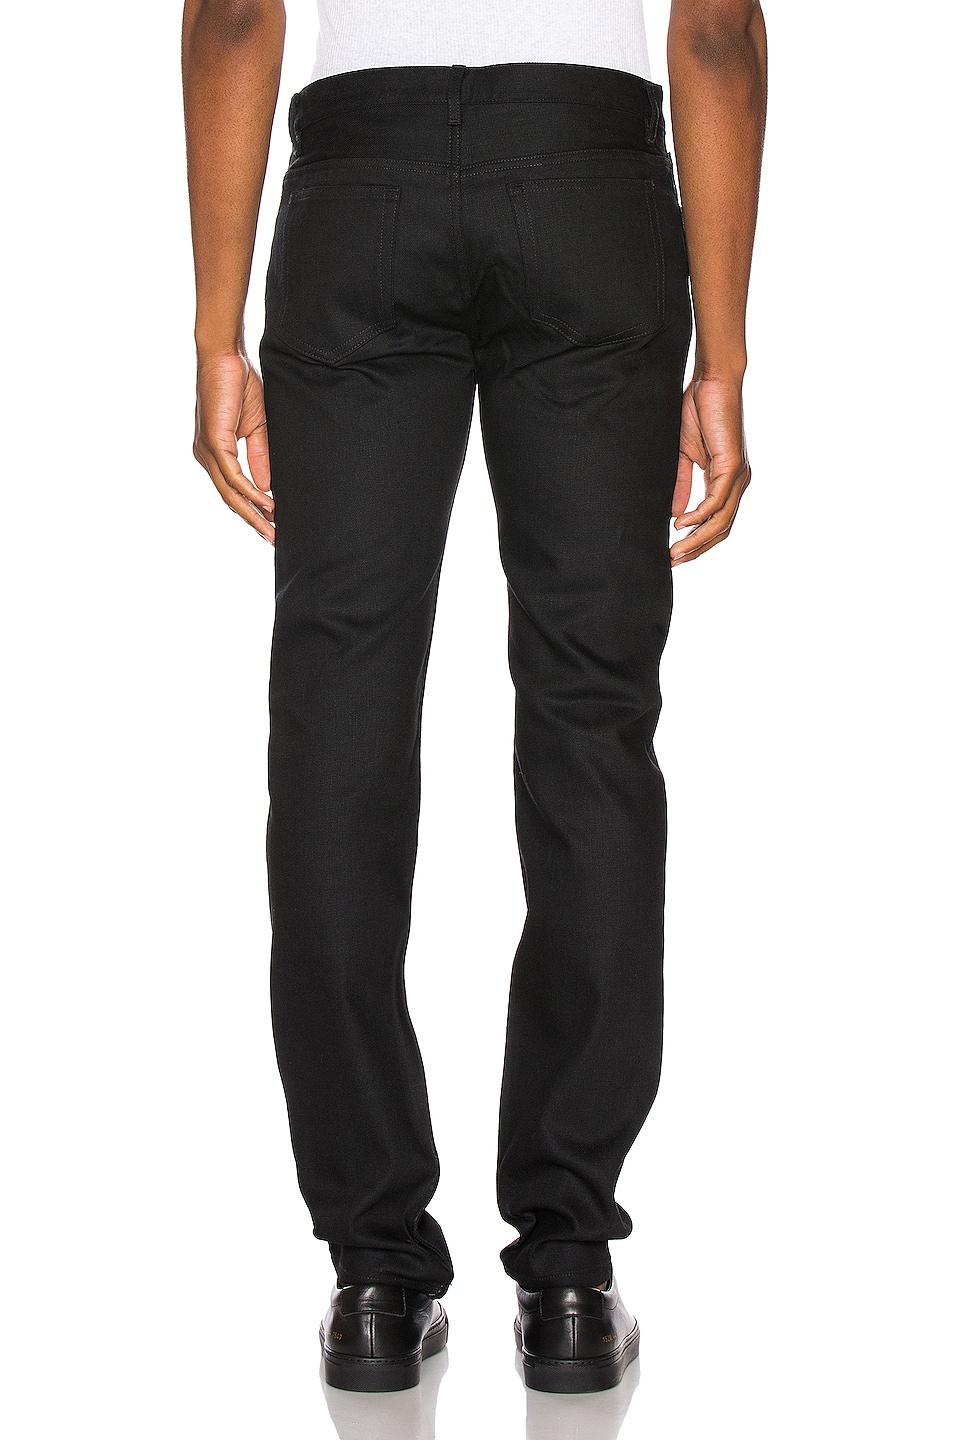 Image 3 of A.P.C. Petite Standard Jeans in Black